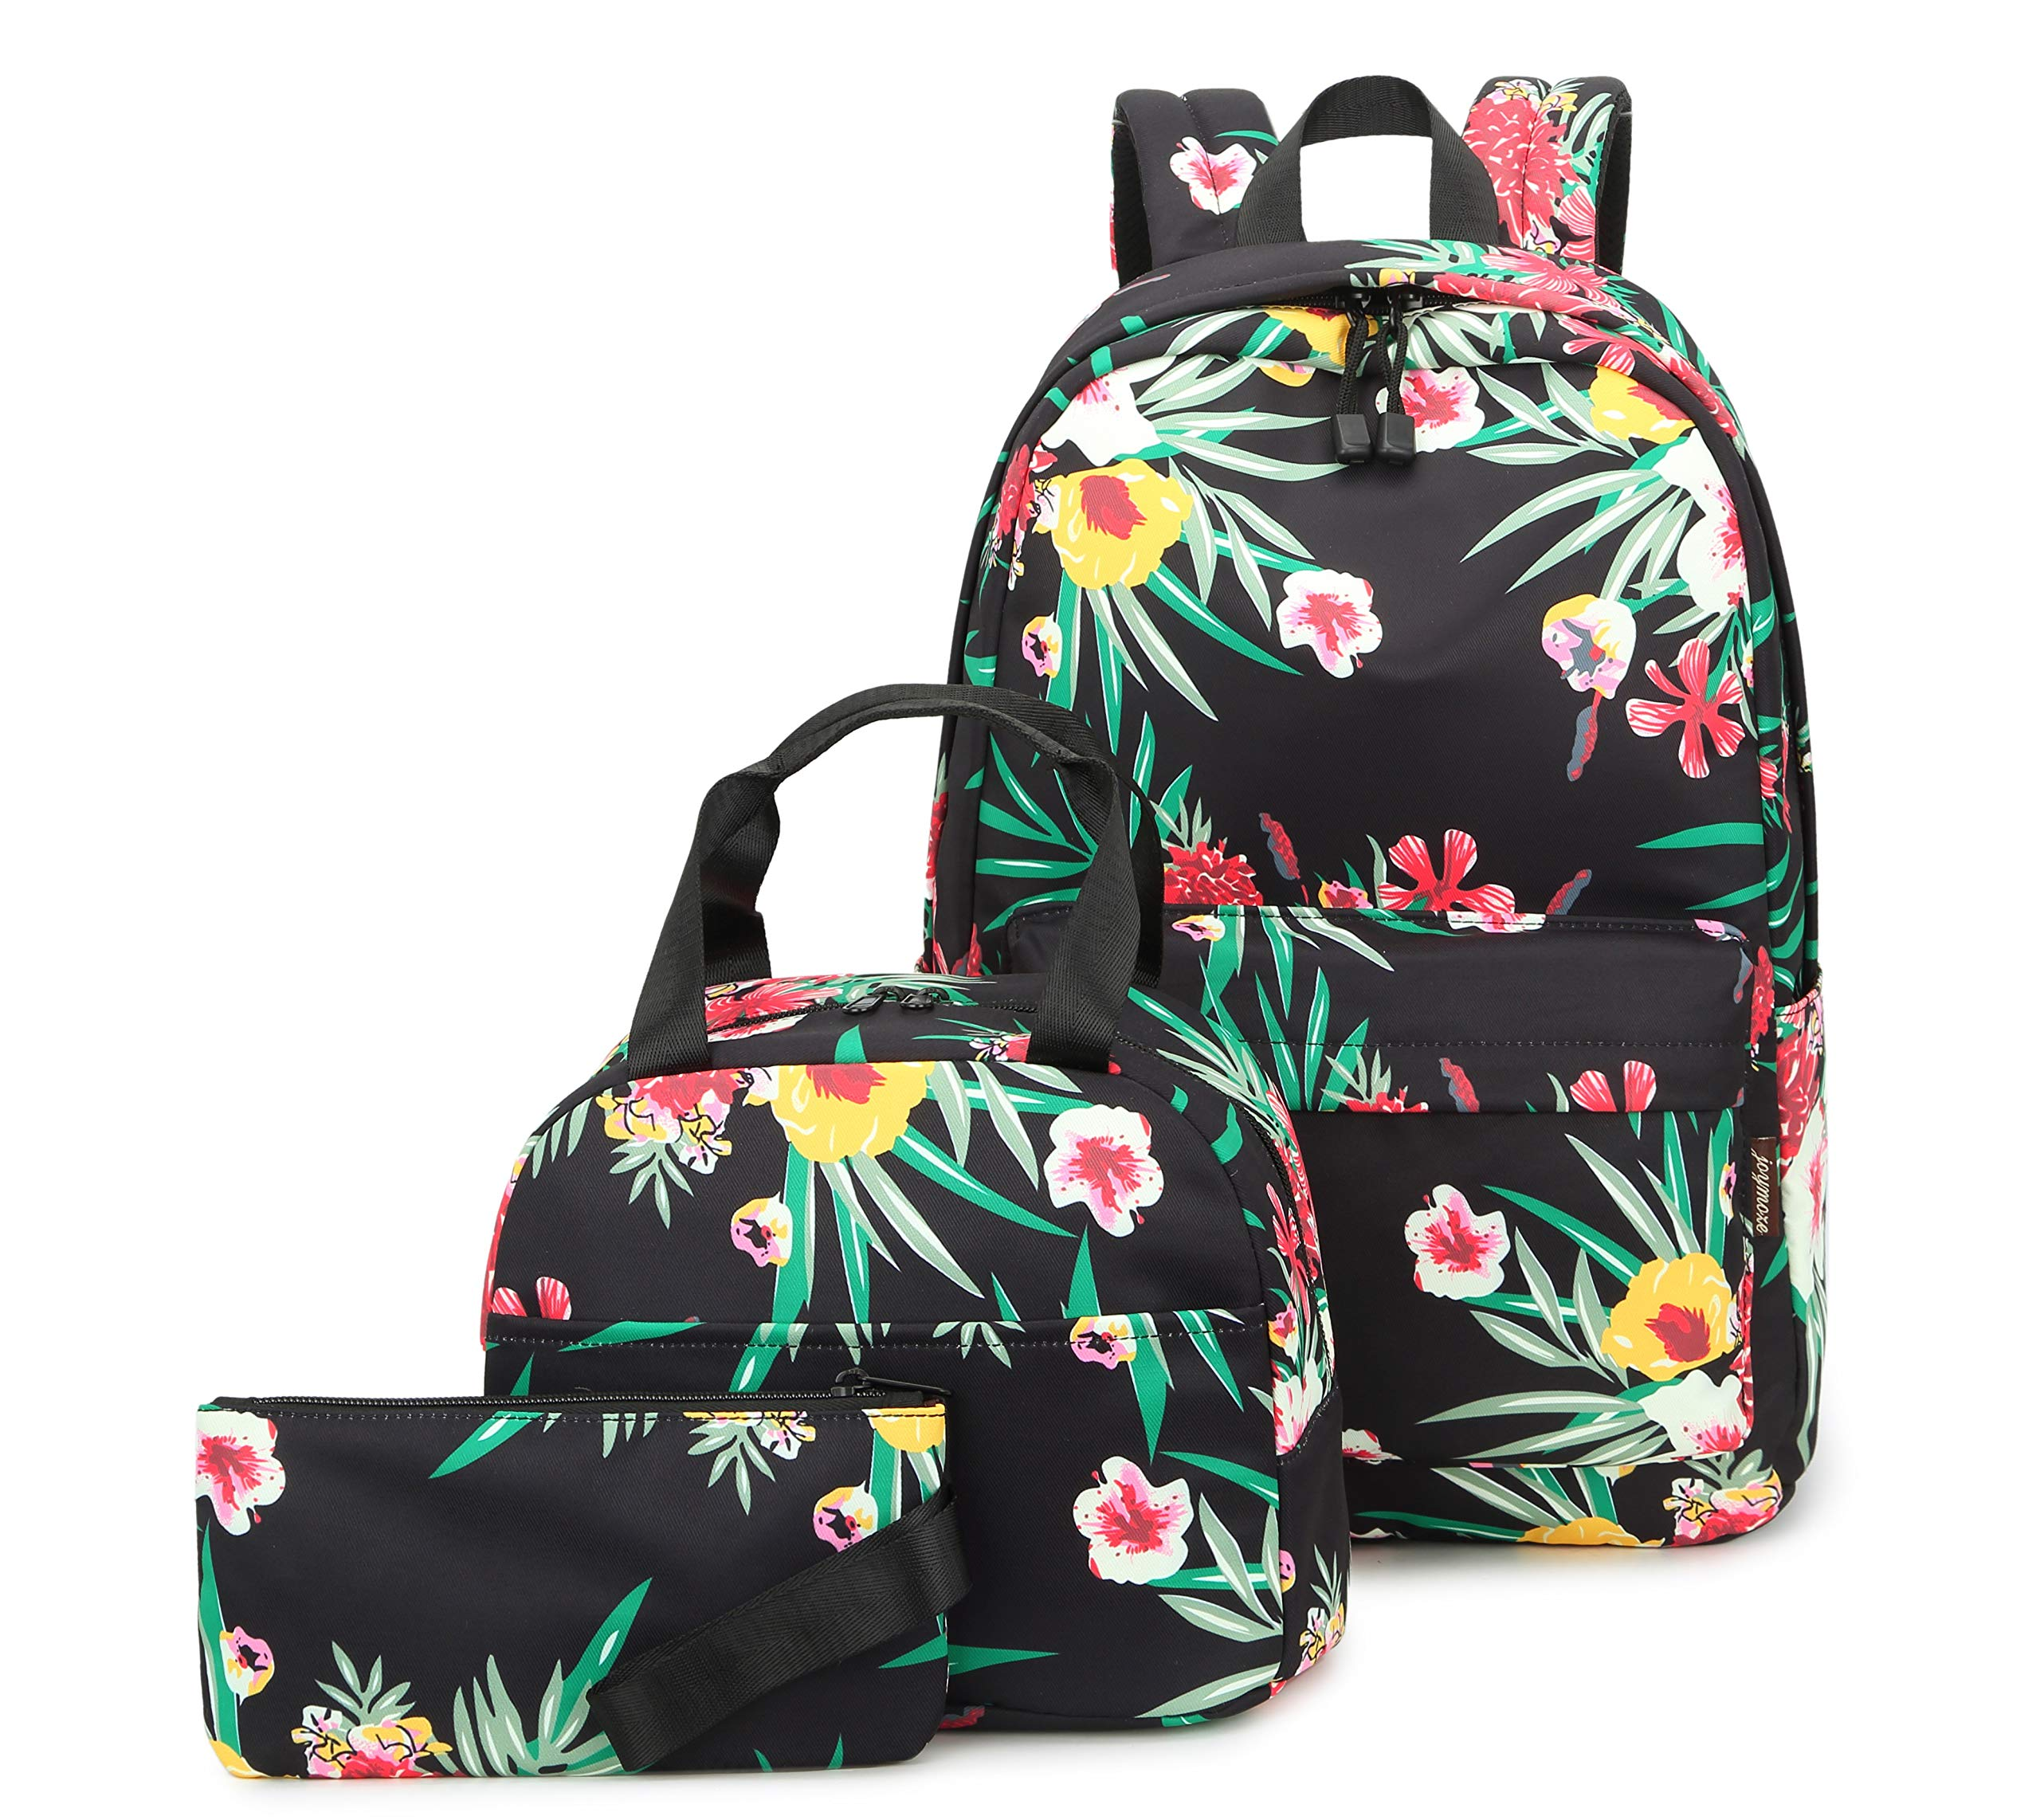 Joymoze Water Resistant Teen Girl Bookbag with Lunch Bag and Pencil Purse Green Flower